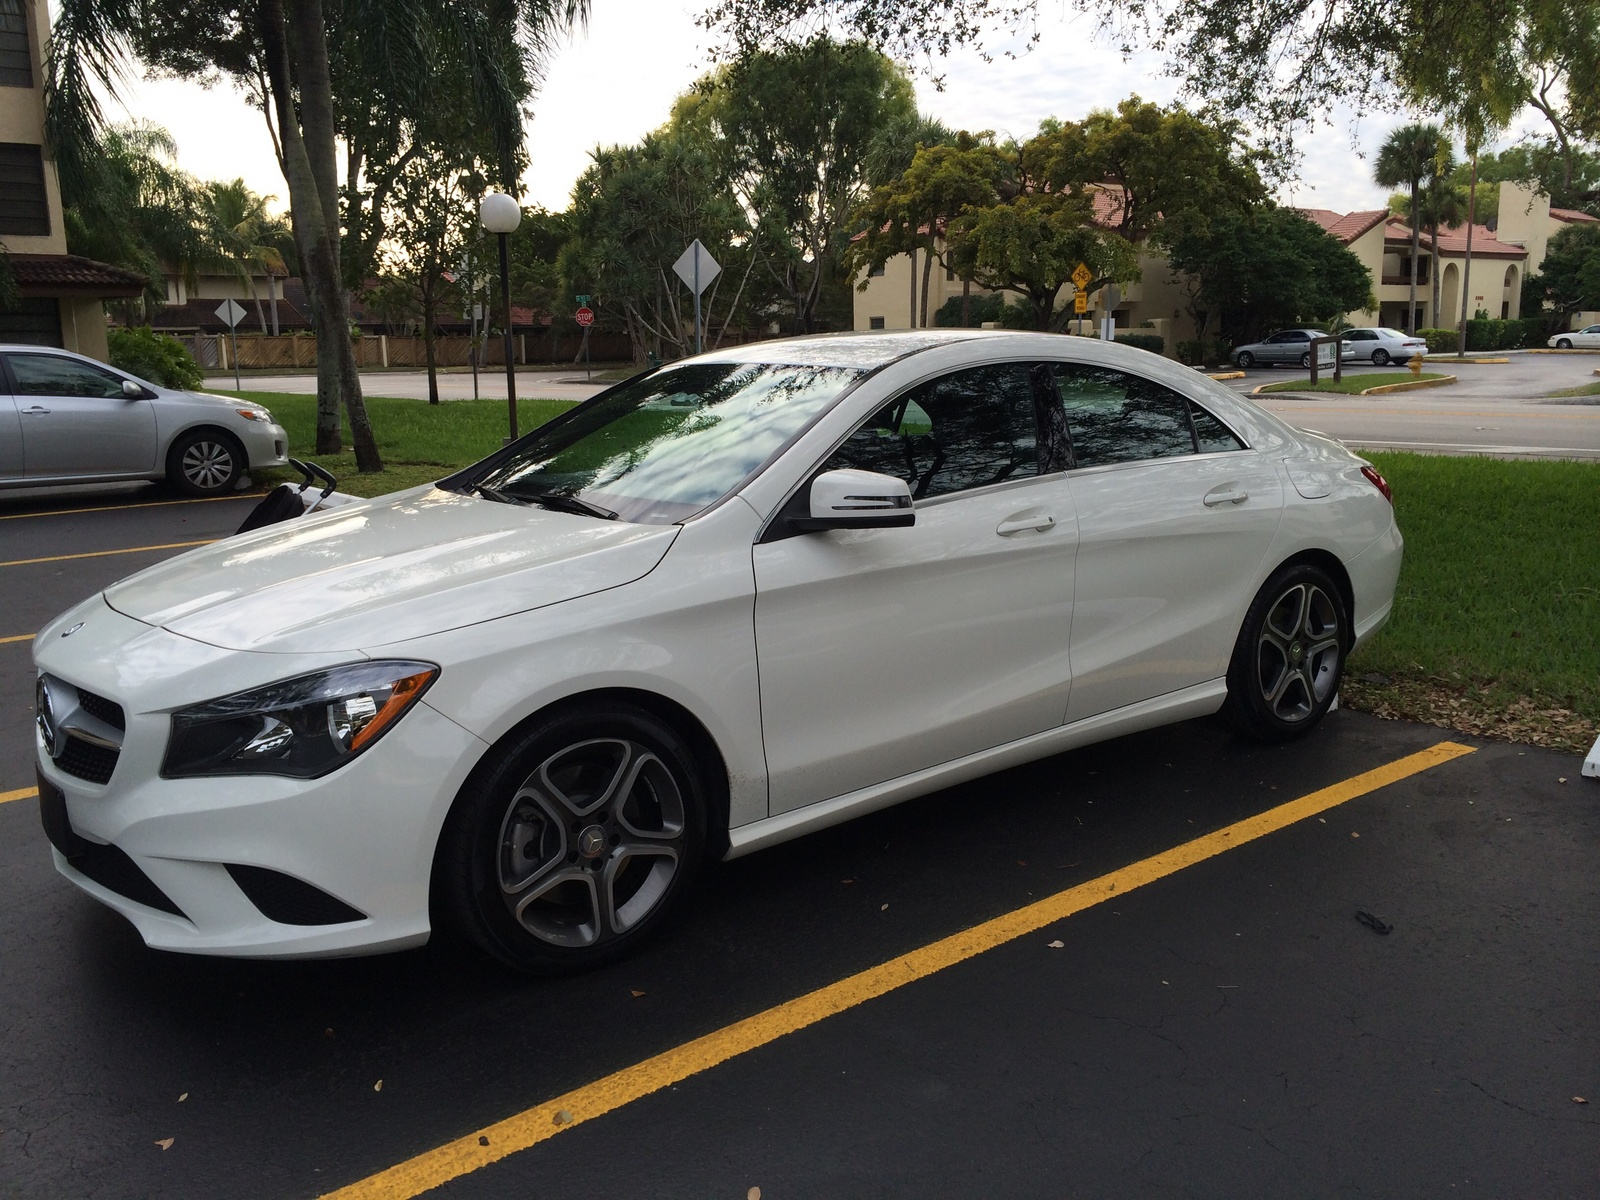 2014 mercedes benz cla class pictures cargurus for Mercedes benz cla 350